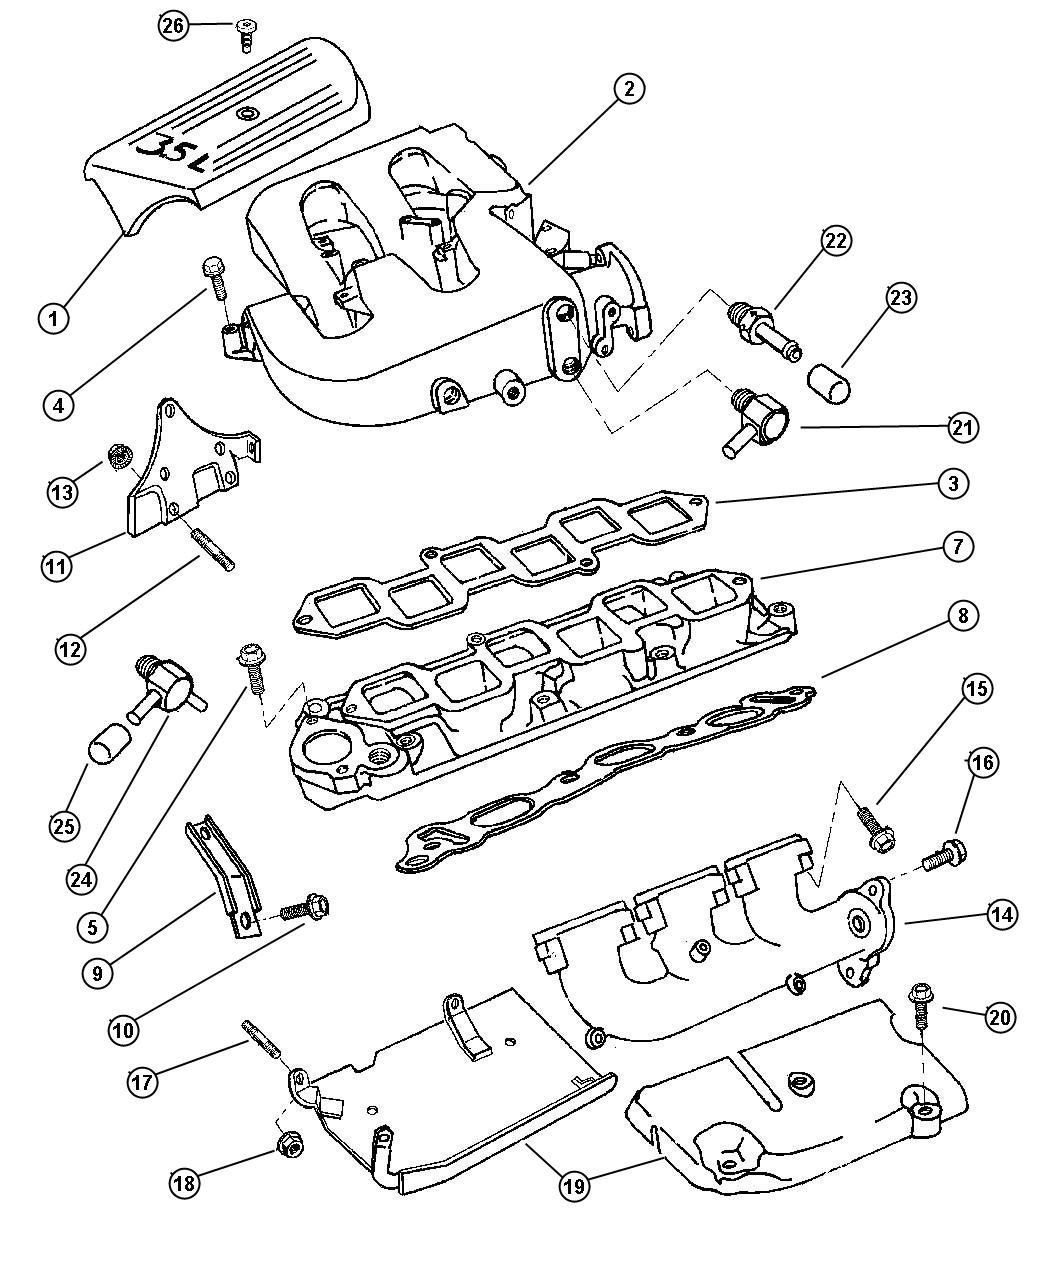 Chrysler Lhs Manifold Intake And Exhaust 3 5l Engine